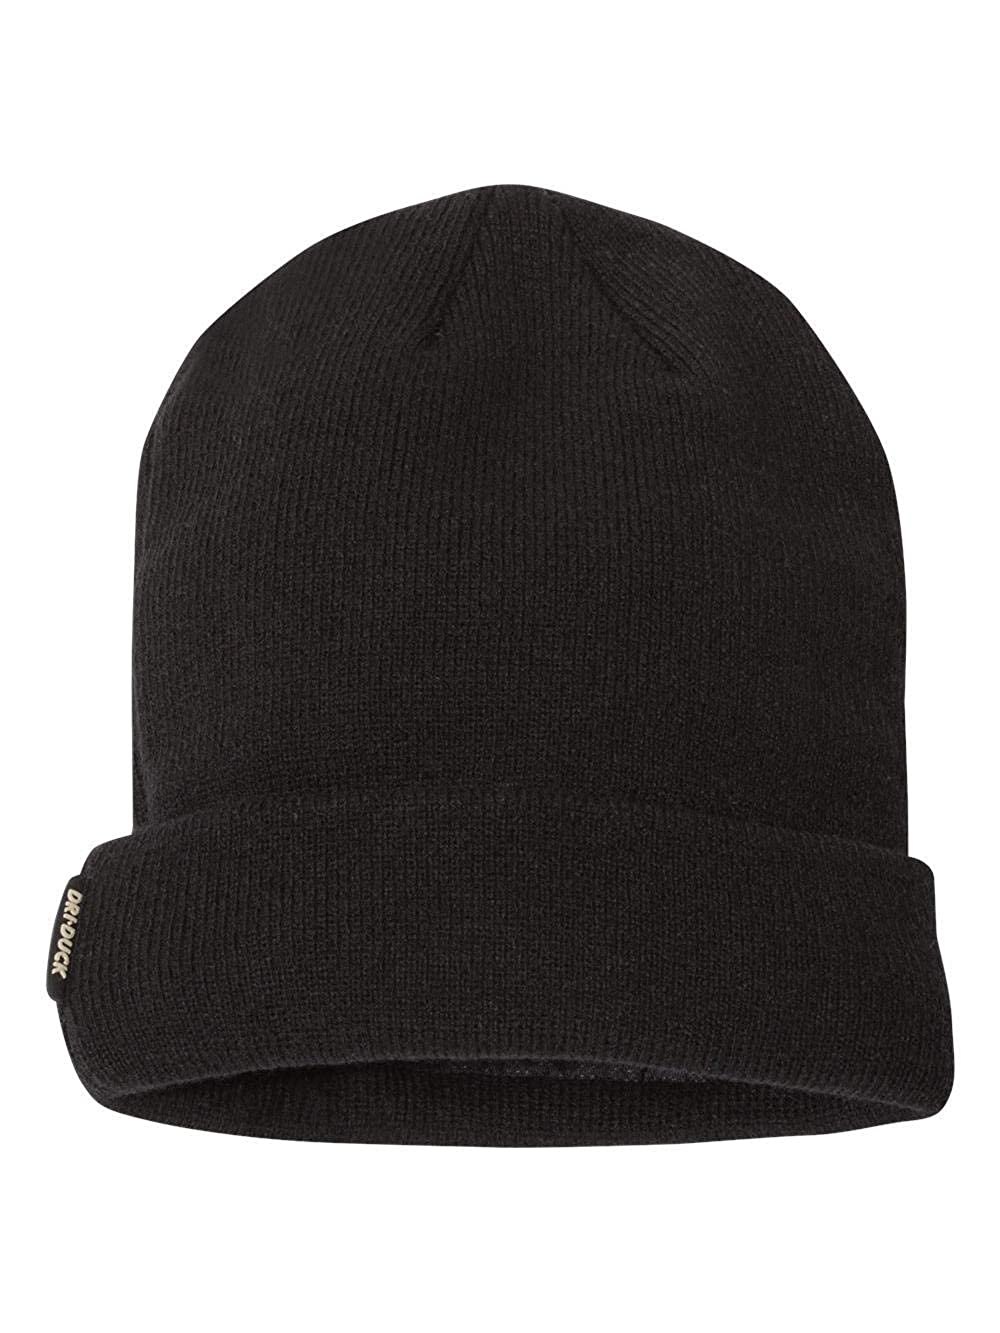 12 Basecamp Performance Knit Beanie DRI Duck 3562